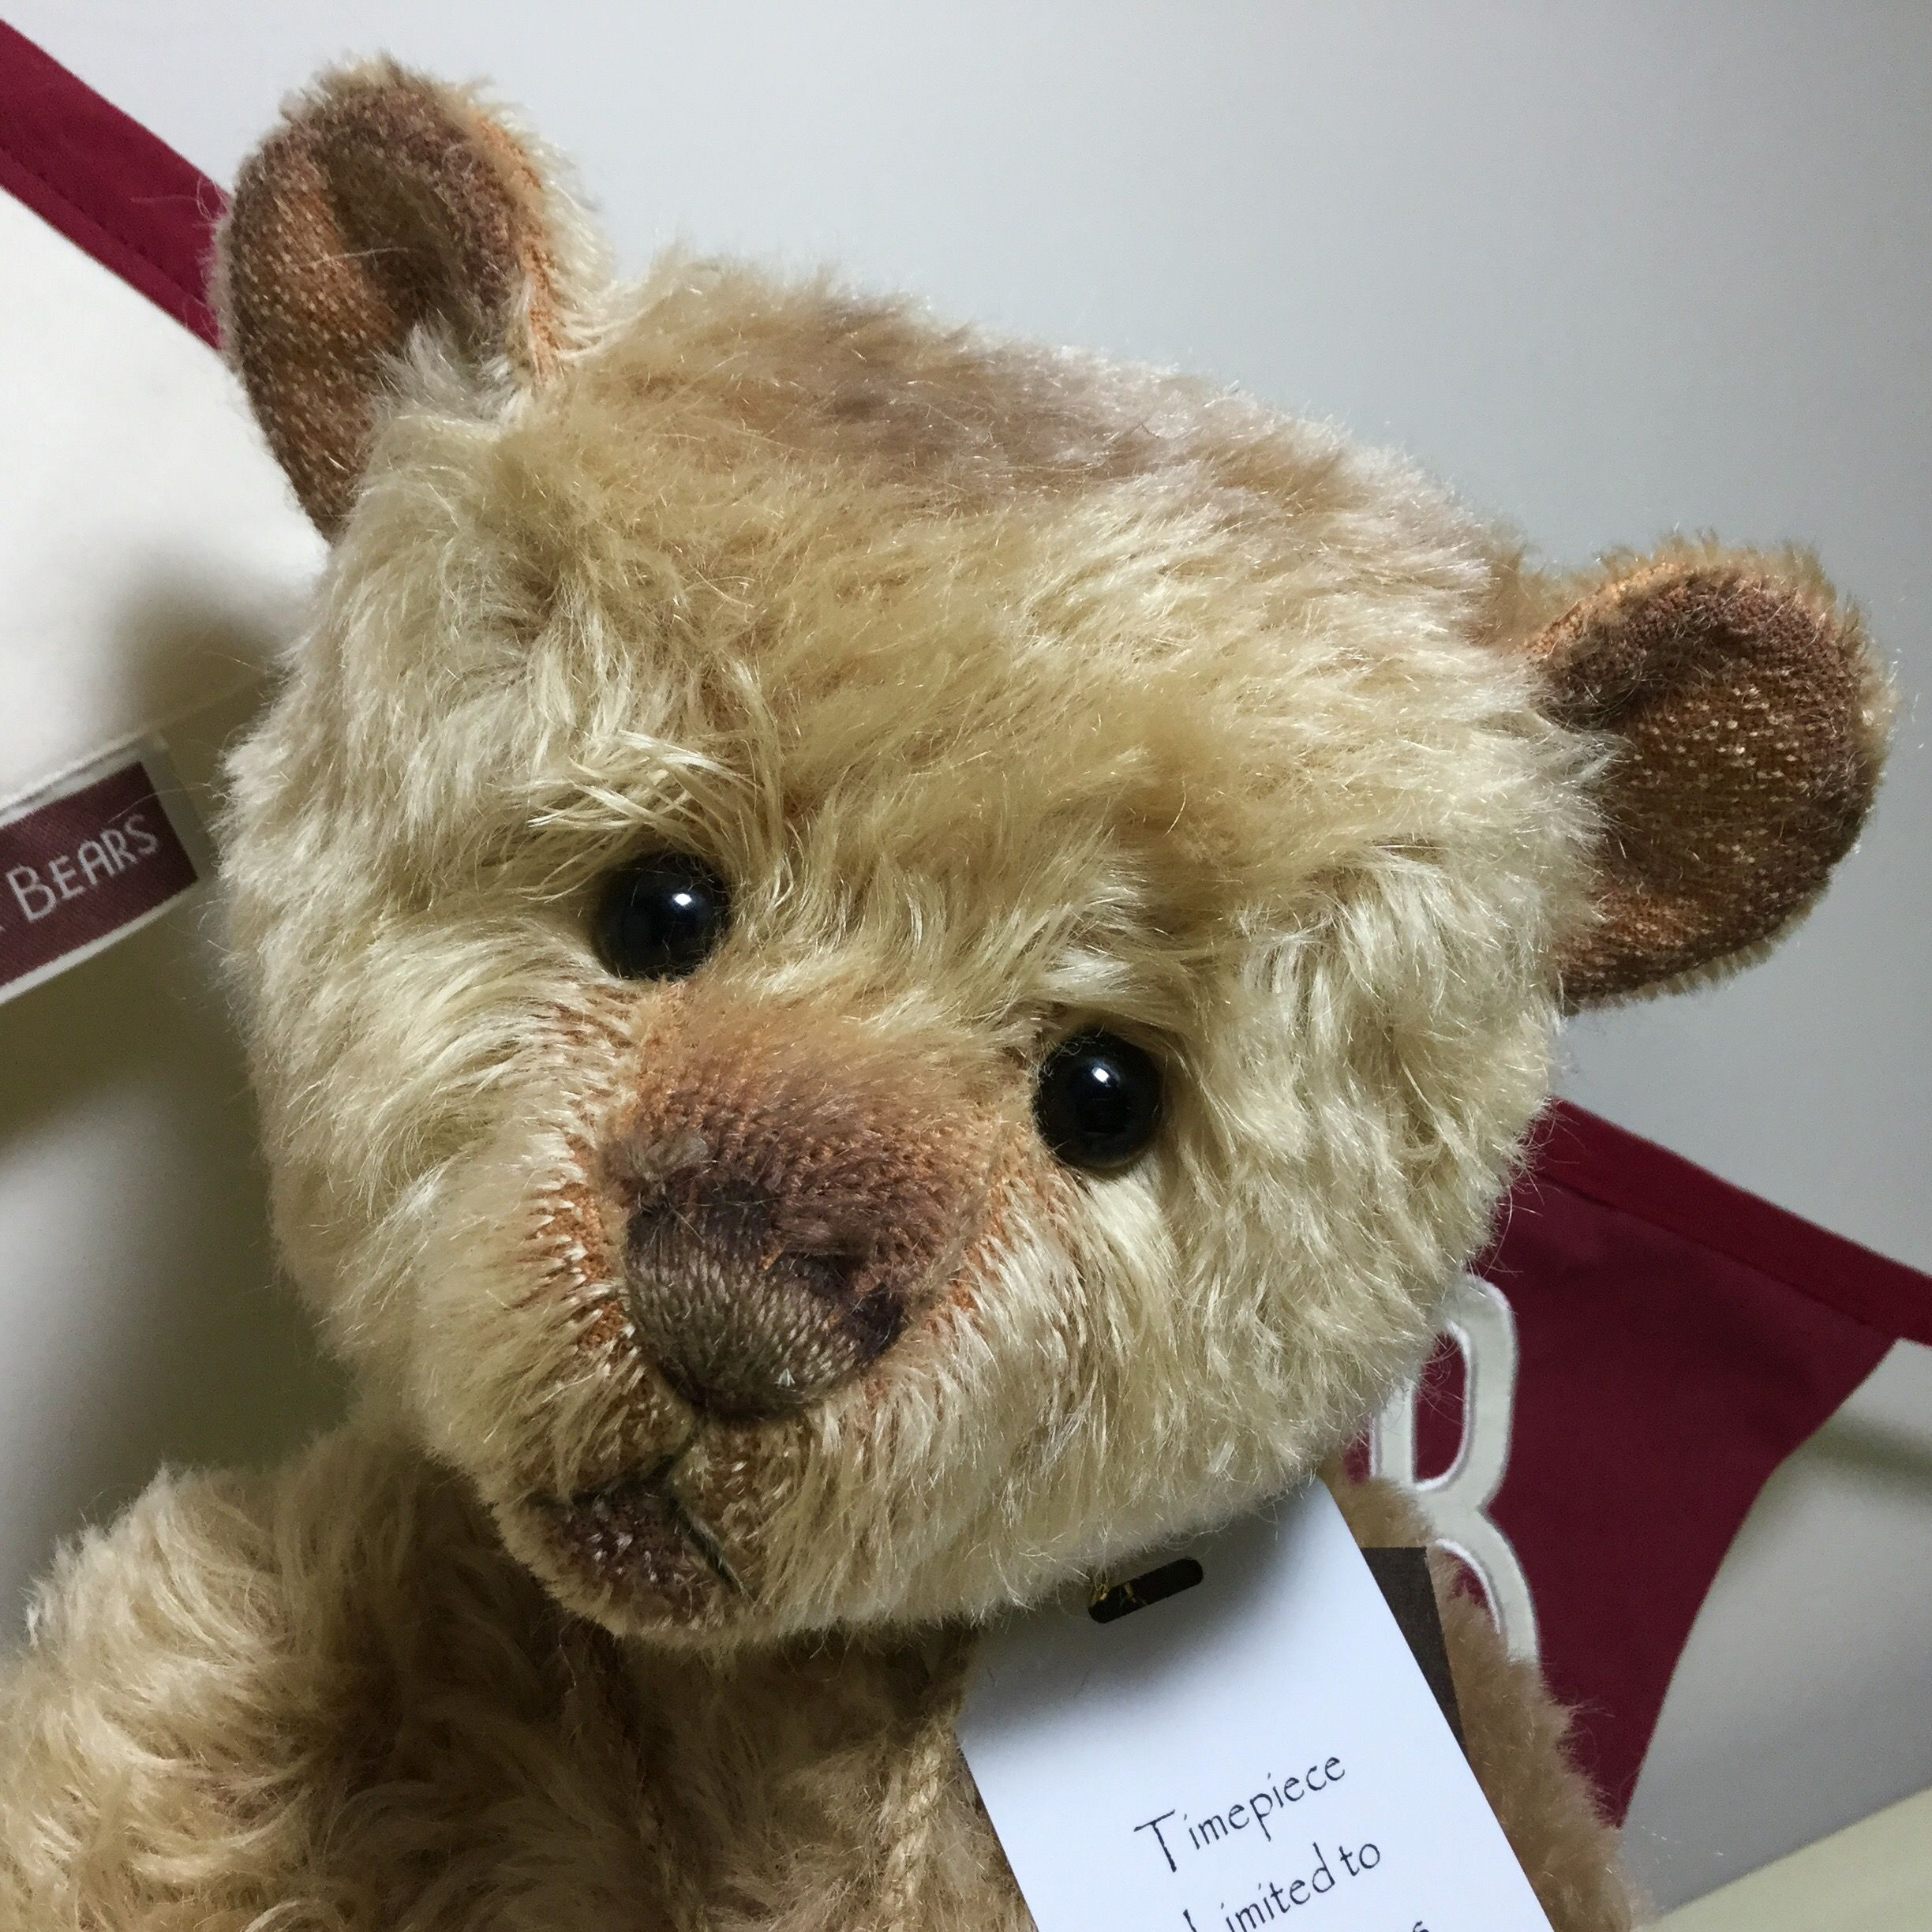 Last Of Stock At Magpies Gifts From The 2016 Collection Timepiece From The Attic Collection Http Magpies Gifts Co Uk Timepie Charlie Bears Teddy Bear Teddy